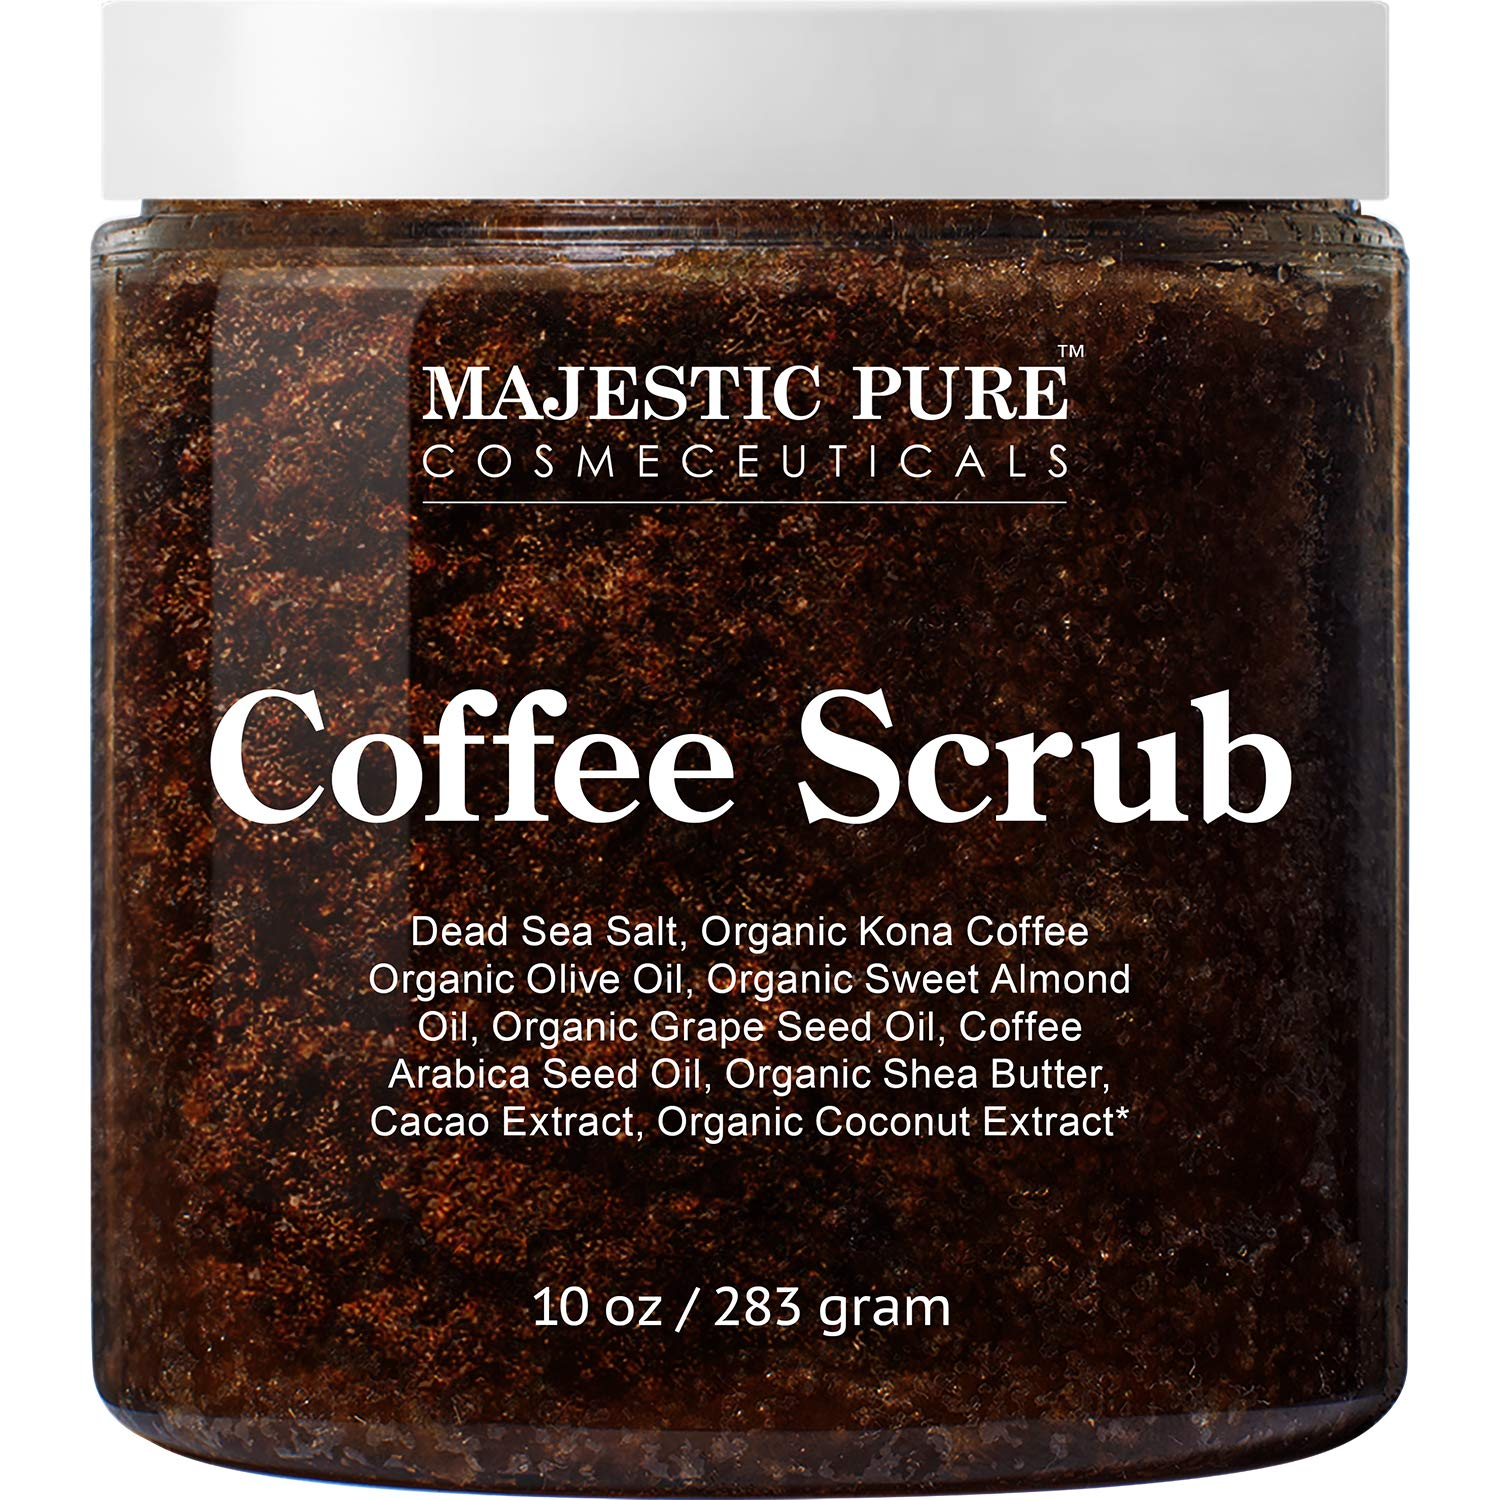 Majestic Pure Arabica Coffee Scrub - All Natural Body Scrub for Skin Care, Stretch Marks, Acne & Cellulite, Reduce the Look of Spider Veins, Eczema, Age Spots & Varicose Veins - 10 Ounces by Majestic Pure